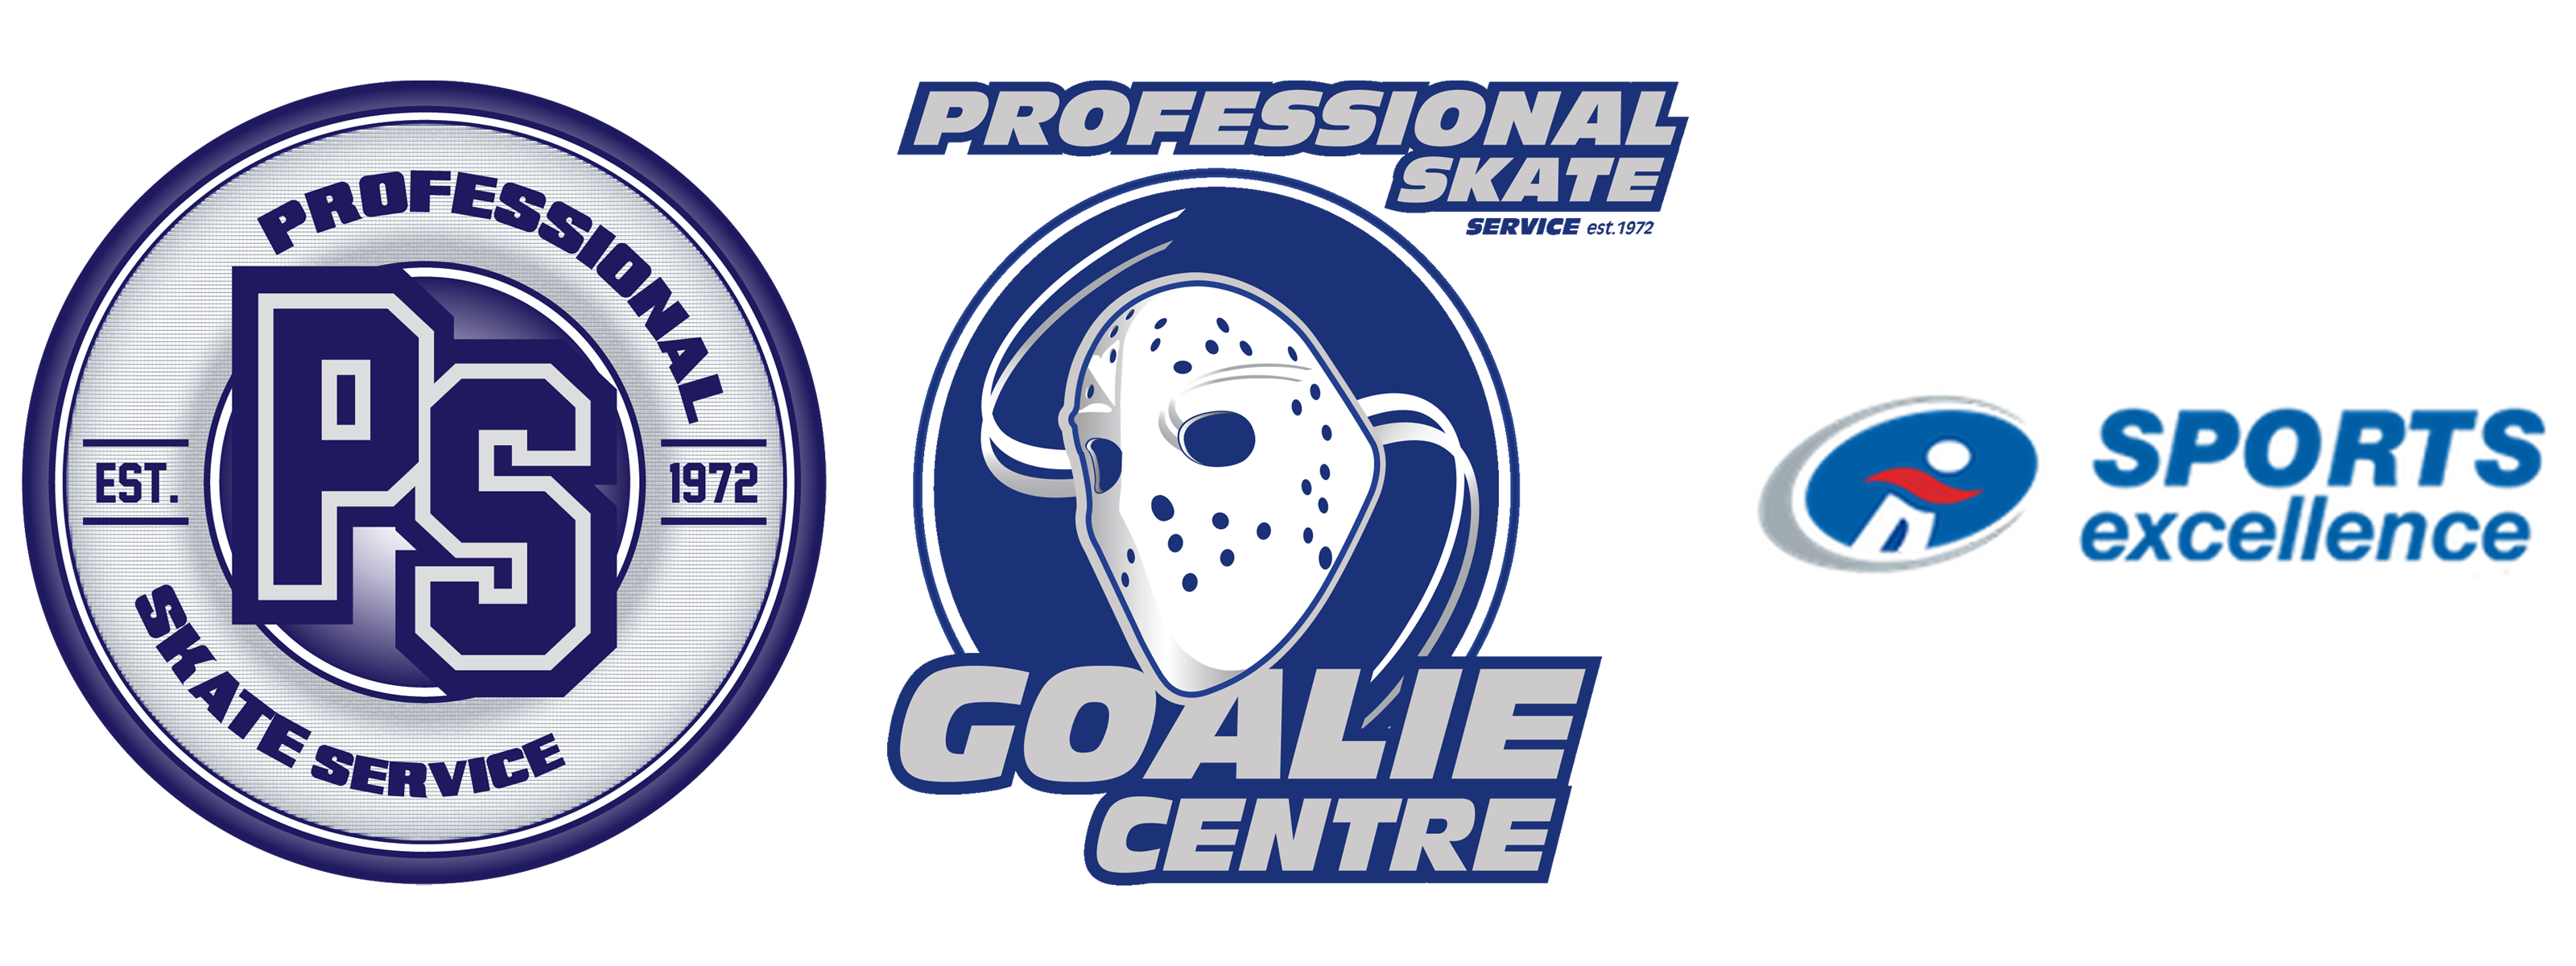 Professional Skate Service | Sports Excellence